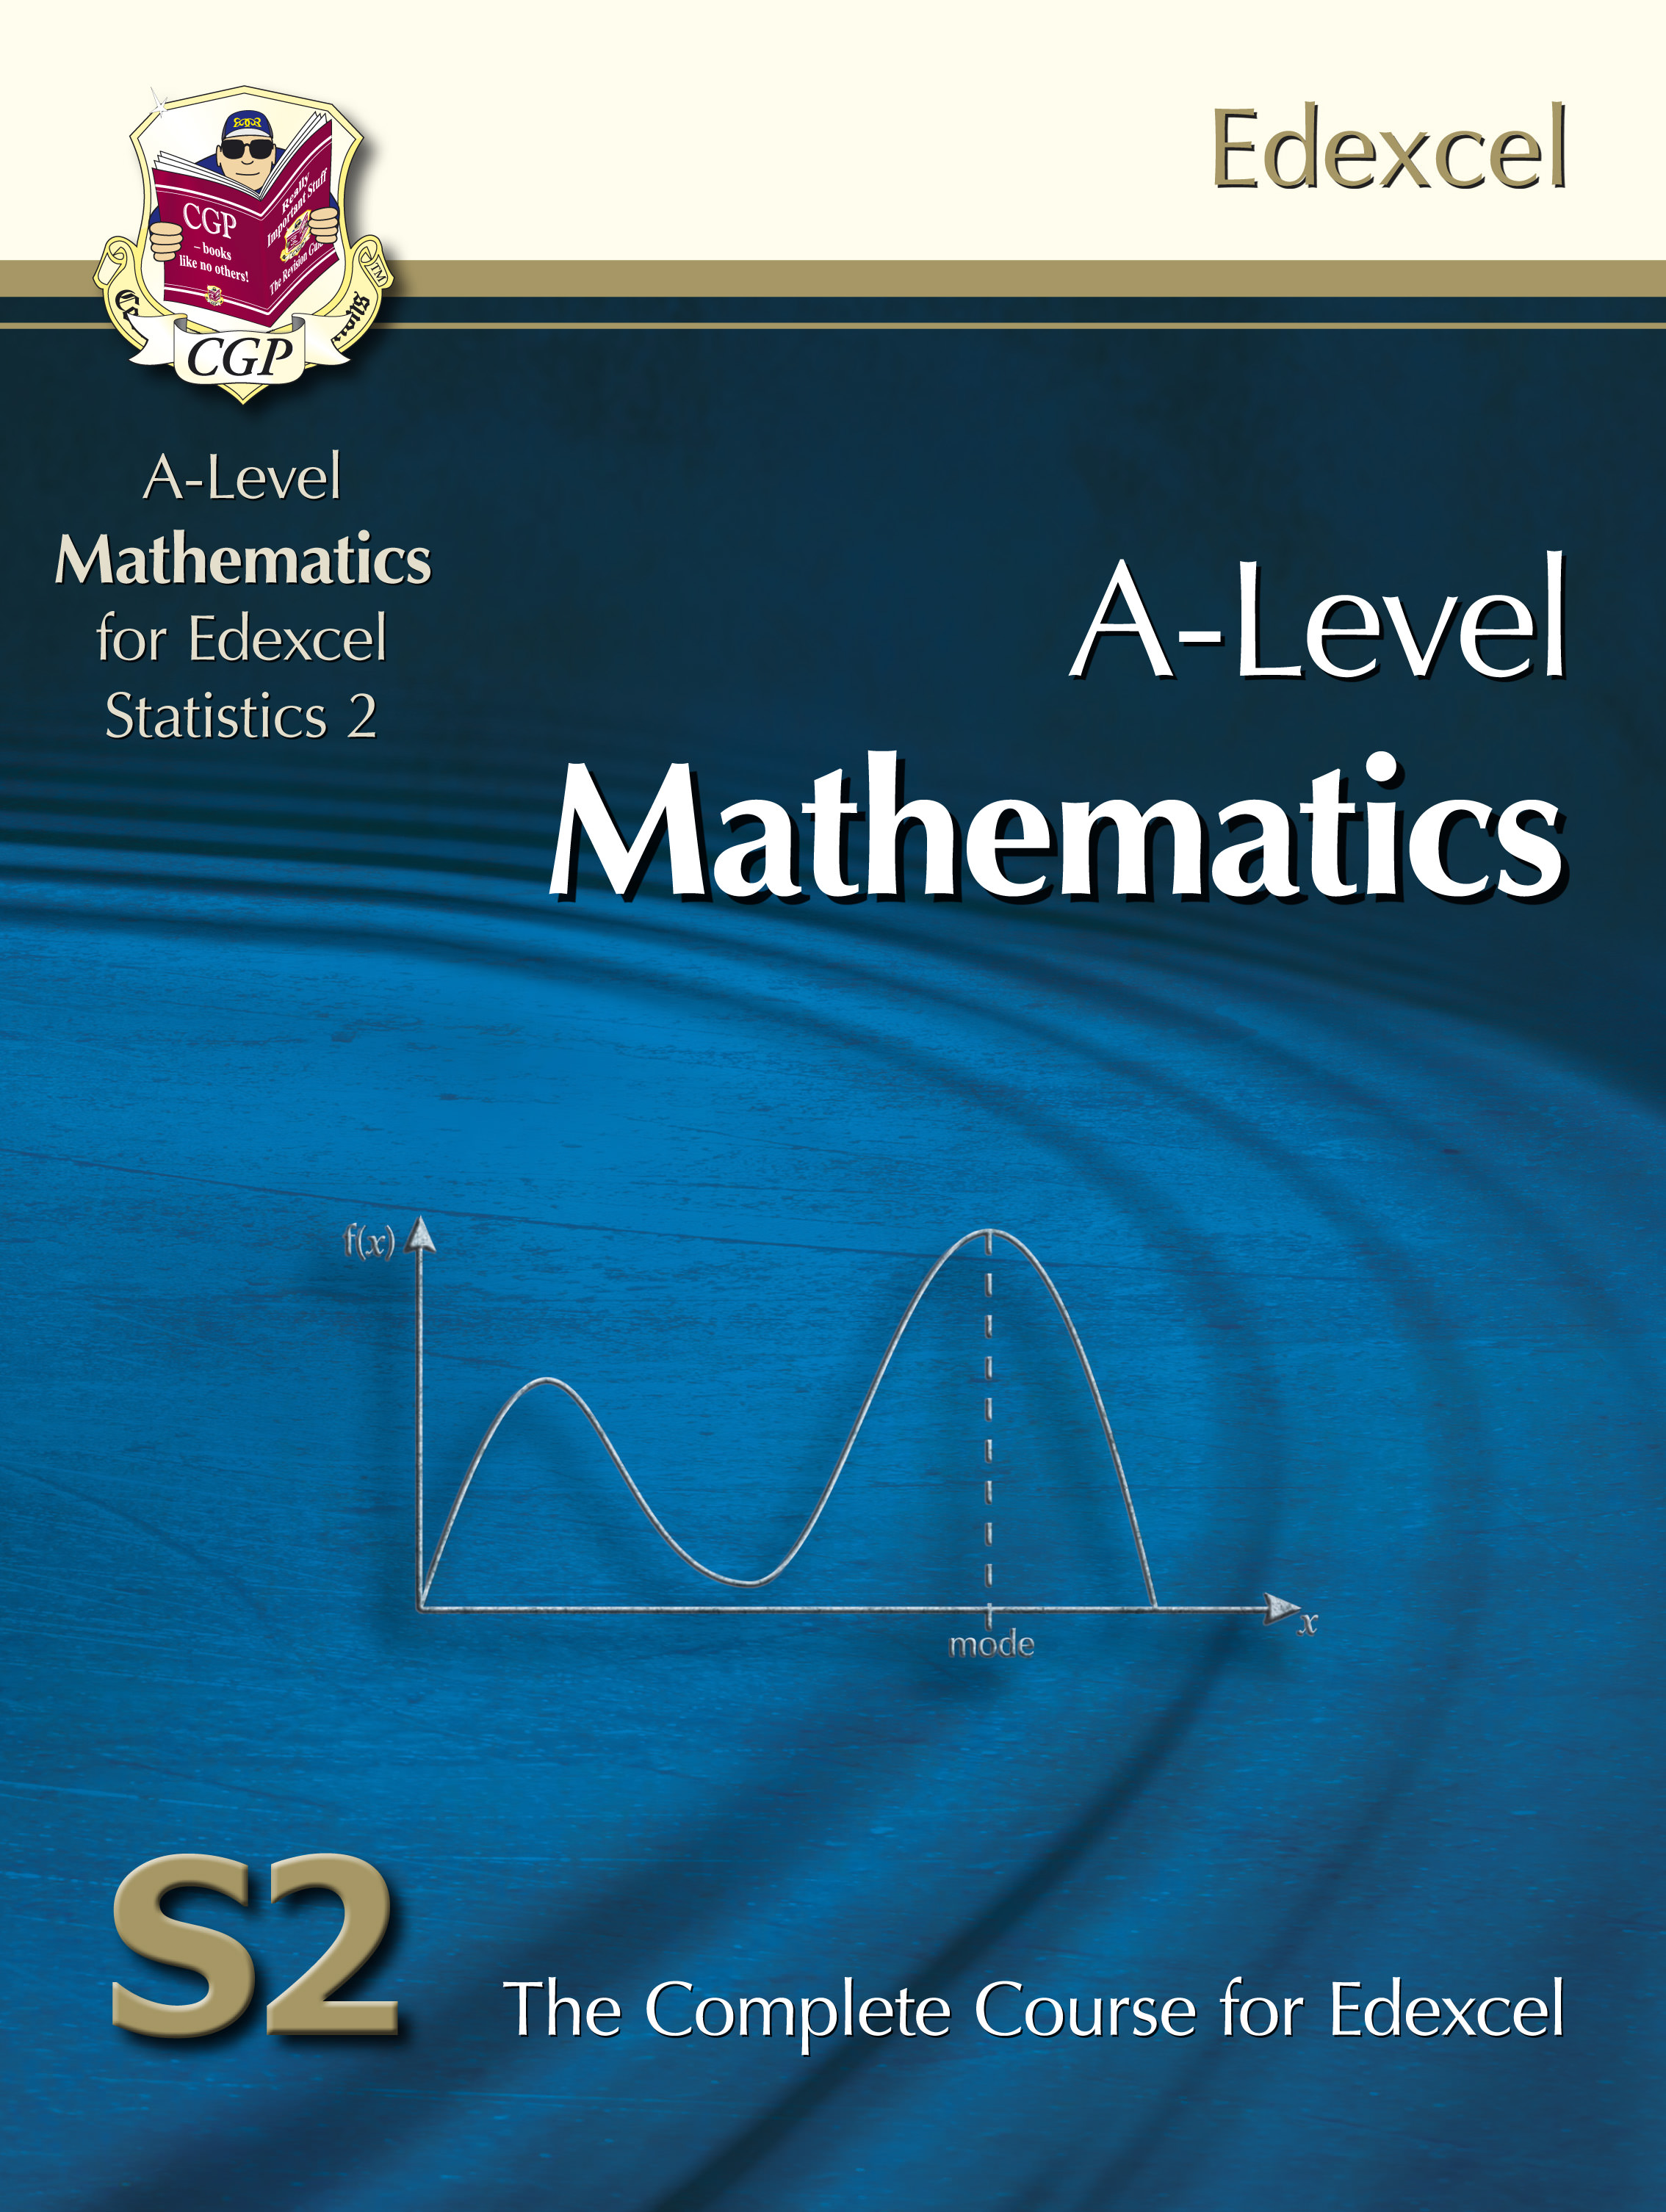 MES2T61DK - A2-Level Maths for Edexcel - Statistics 2: Student Book